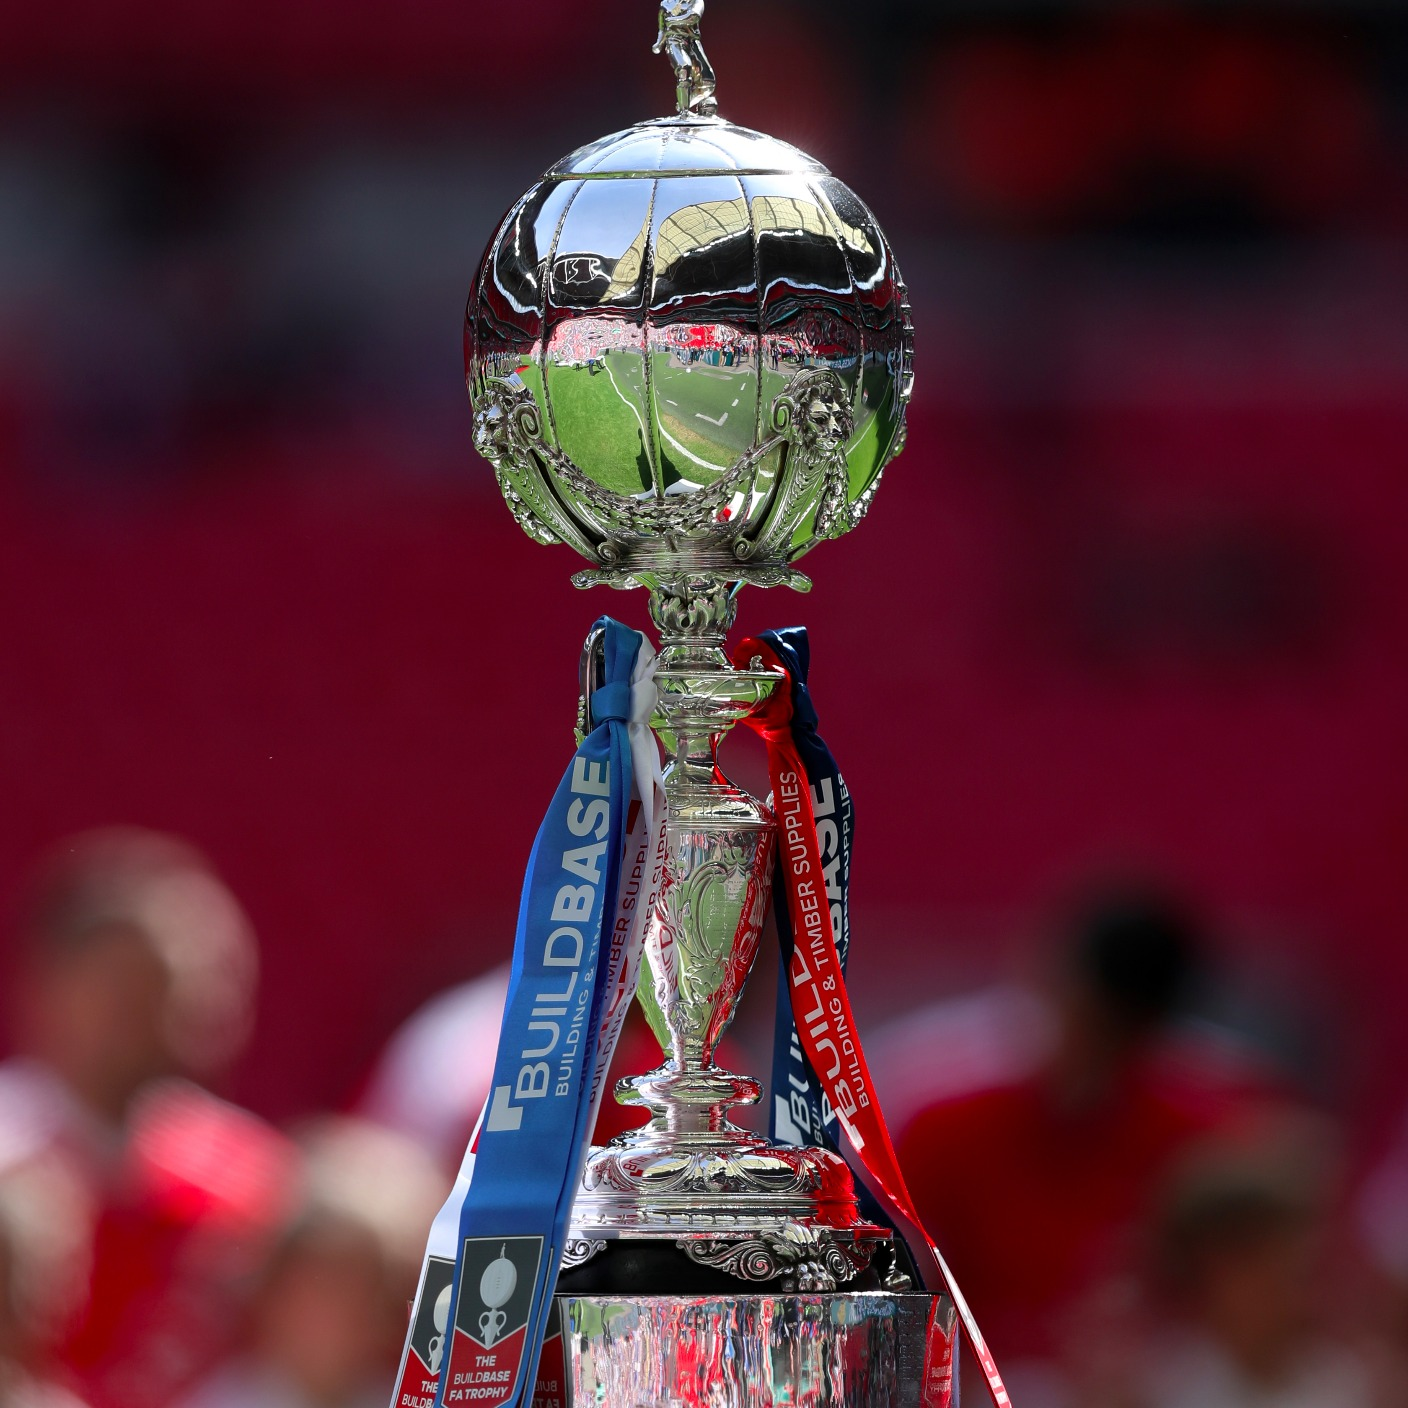 York City win FA Trophy at Wembley | Tyne Tees - ITV News | 1408 x 1408 jpeg 352kB